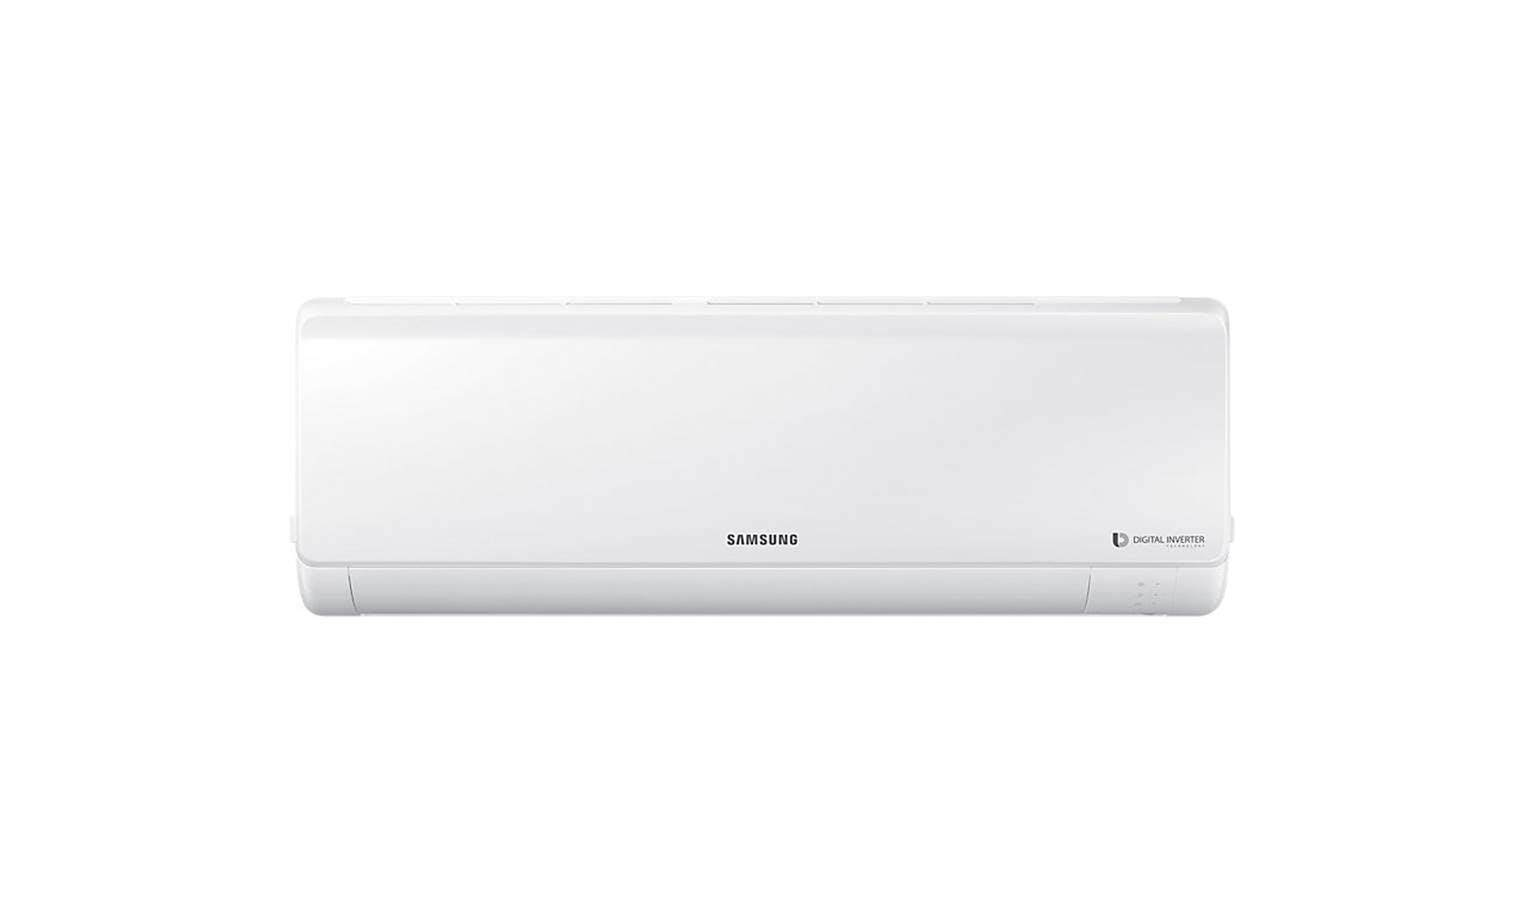 SAMSUNG 1.0hp Wall Mounted Air-Cond (Without Virus Doctor) AR09MVFHJWKNME